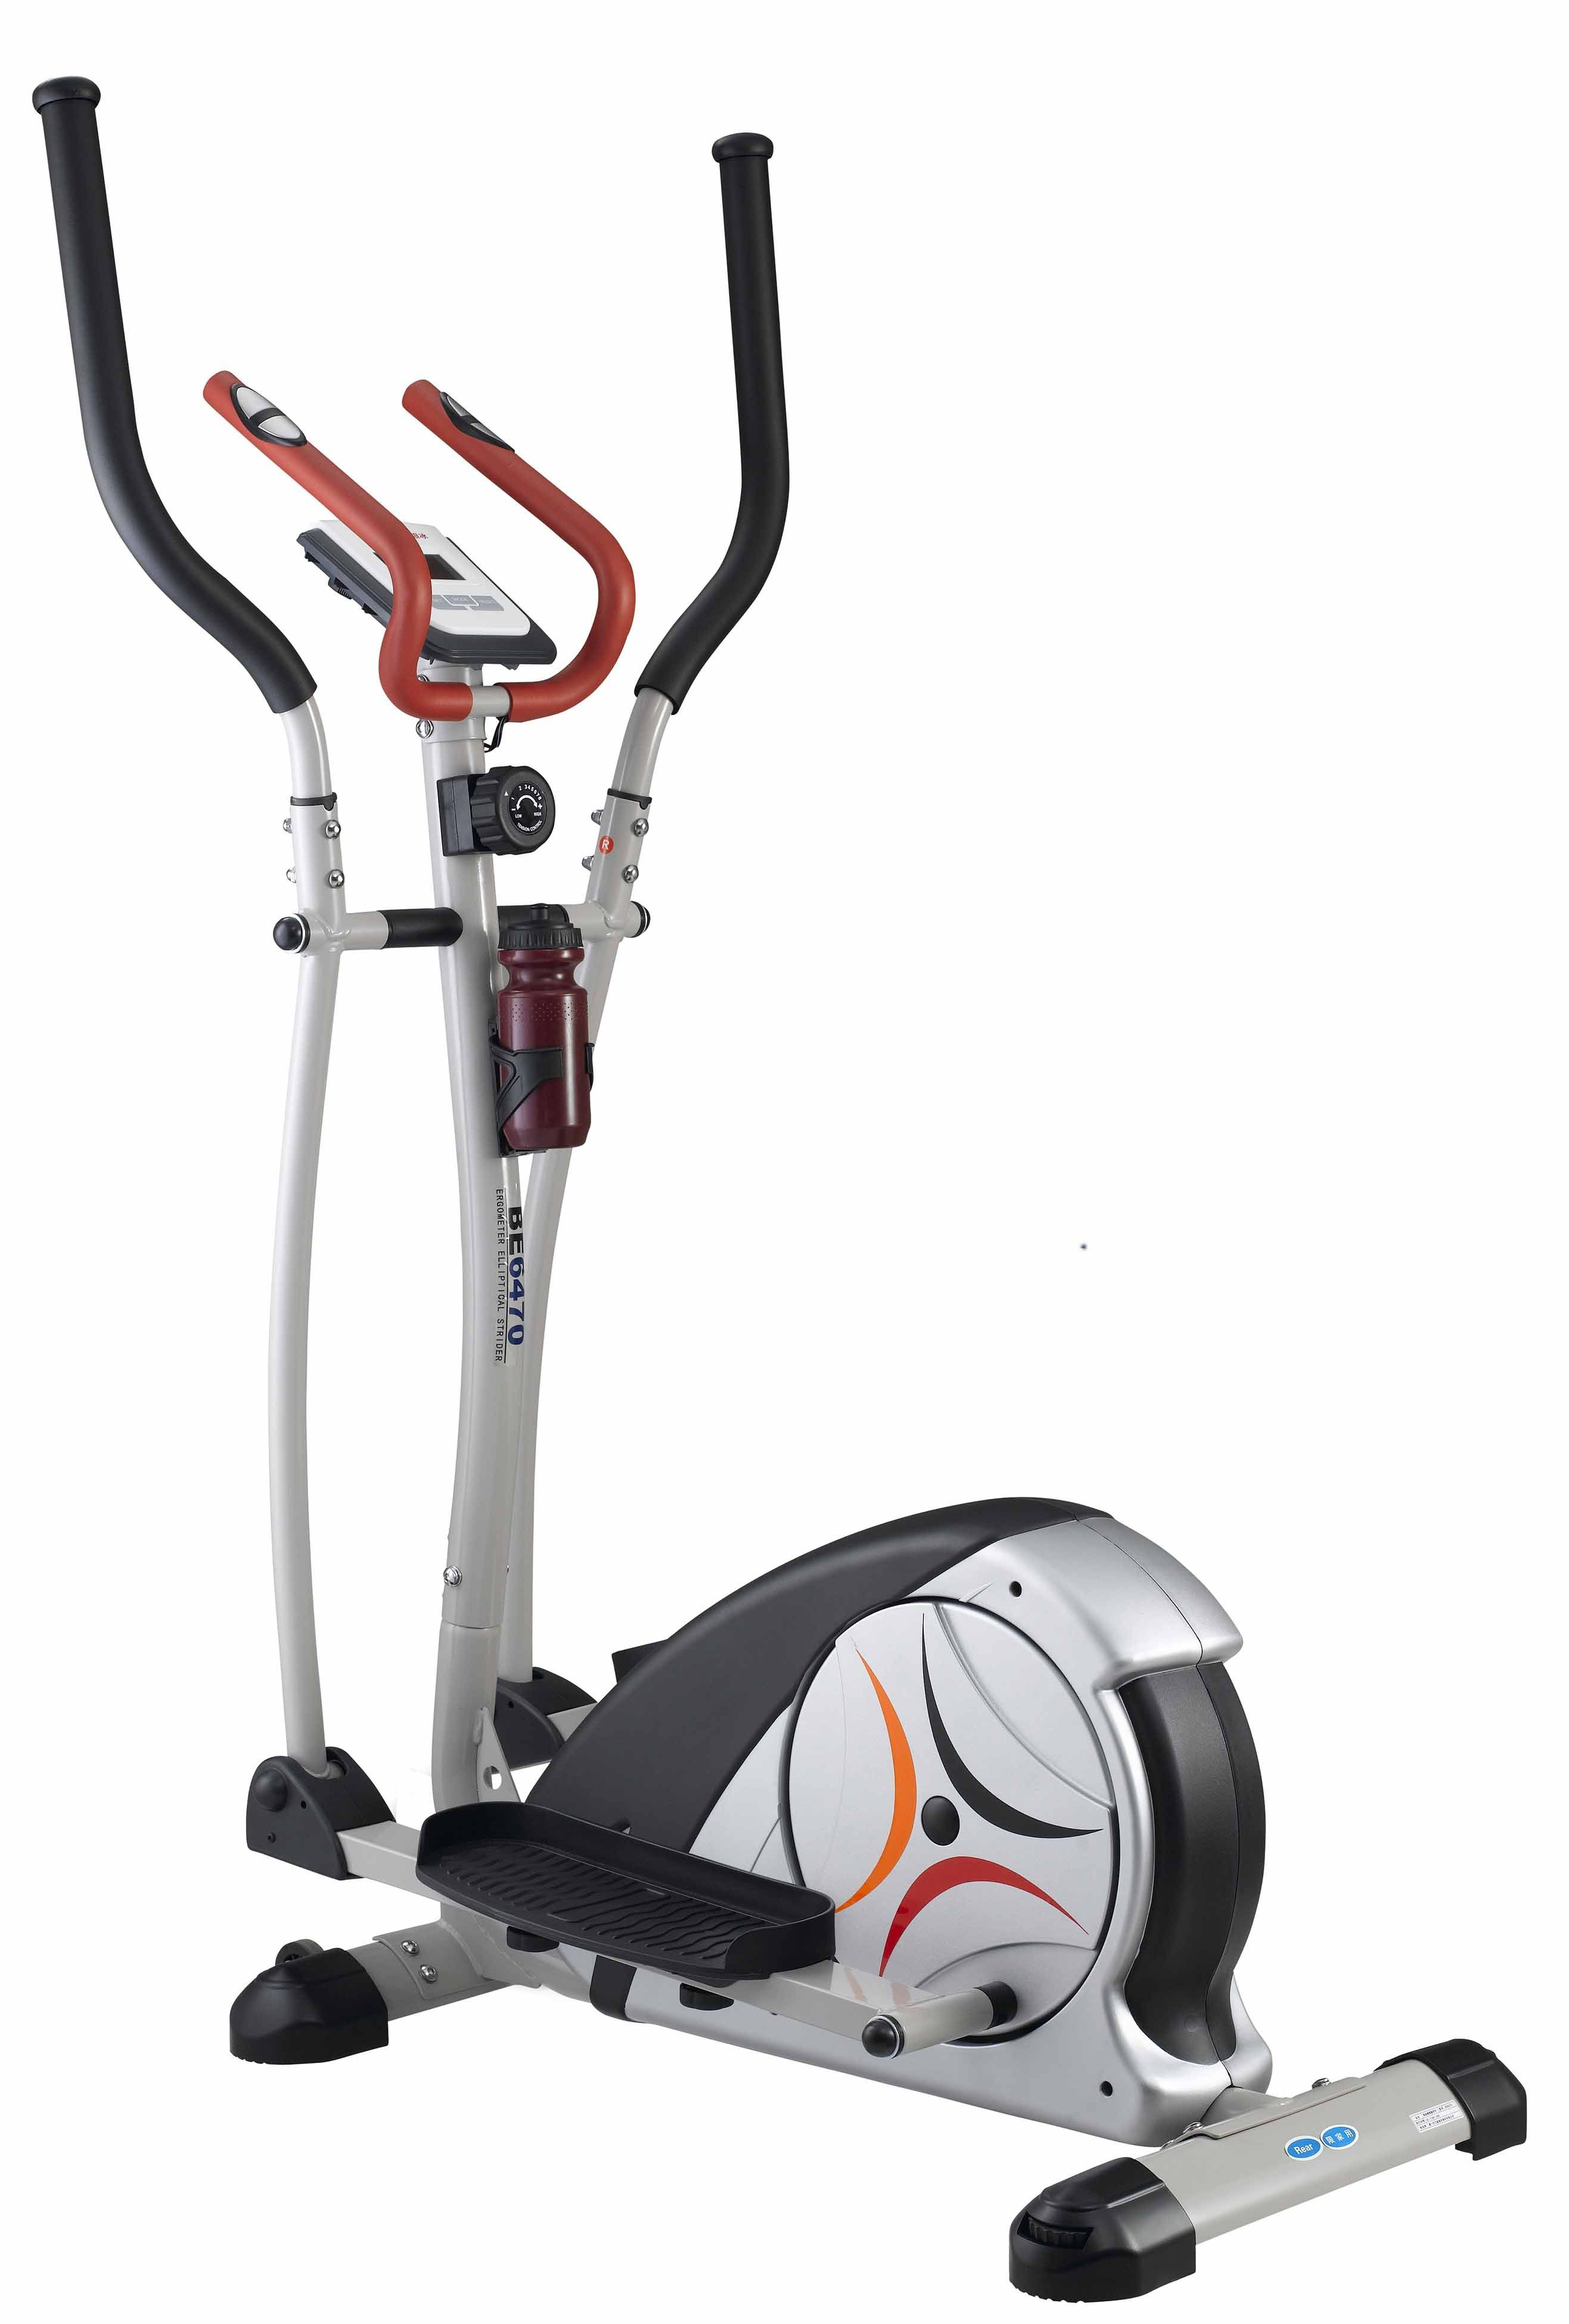 Cross Trainer Calories Cross Trainer Elliptical Bike Model No Se6470 Console Buttons Type Lcd Display Shows Ti Home Workout Equipment Cross Trainer Trainers